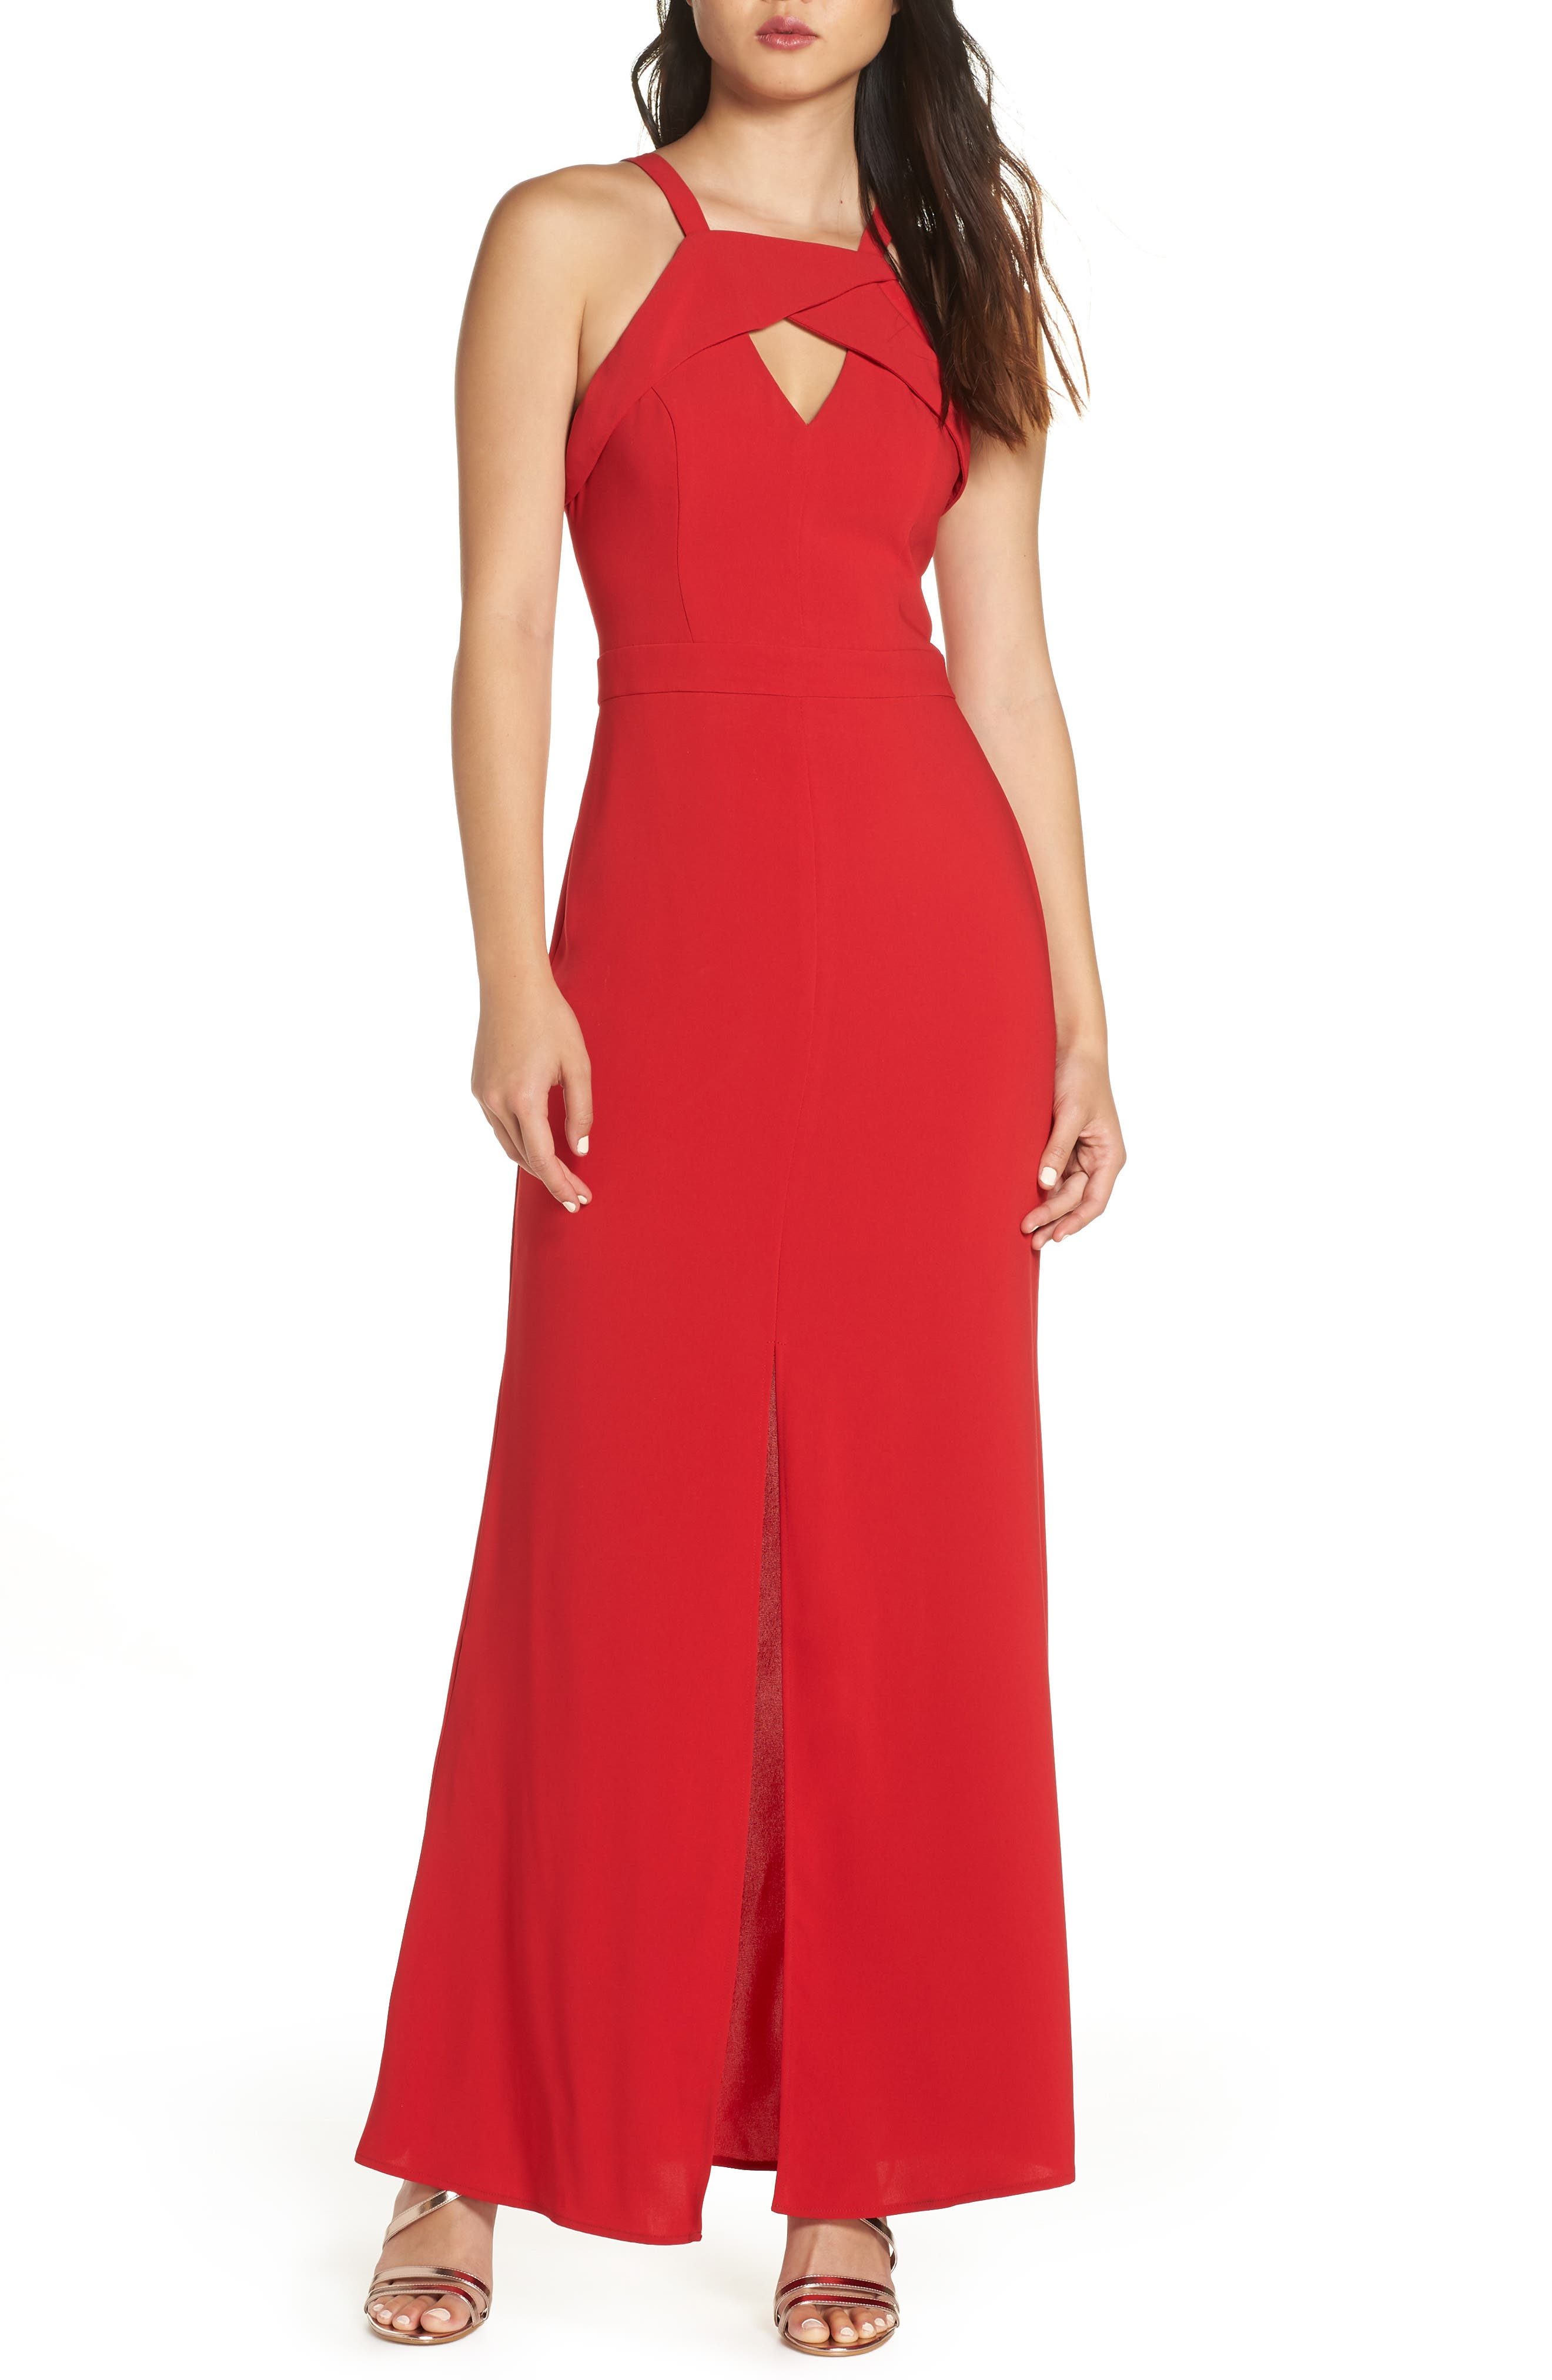 HARLYN Keyhole Bodice Gown in Red